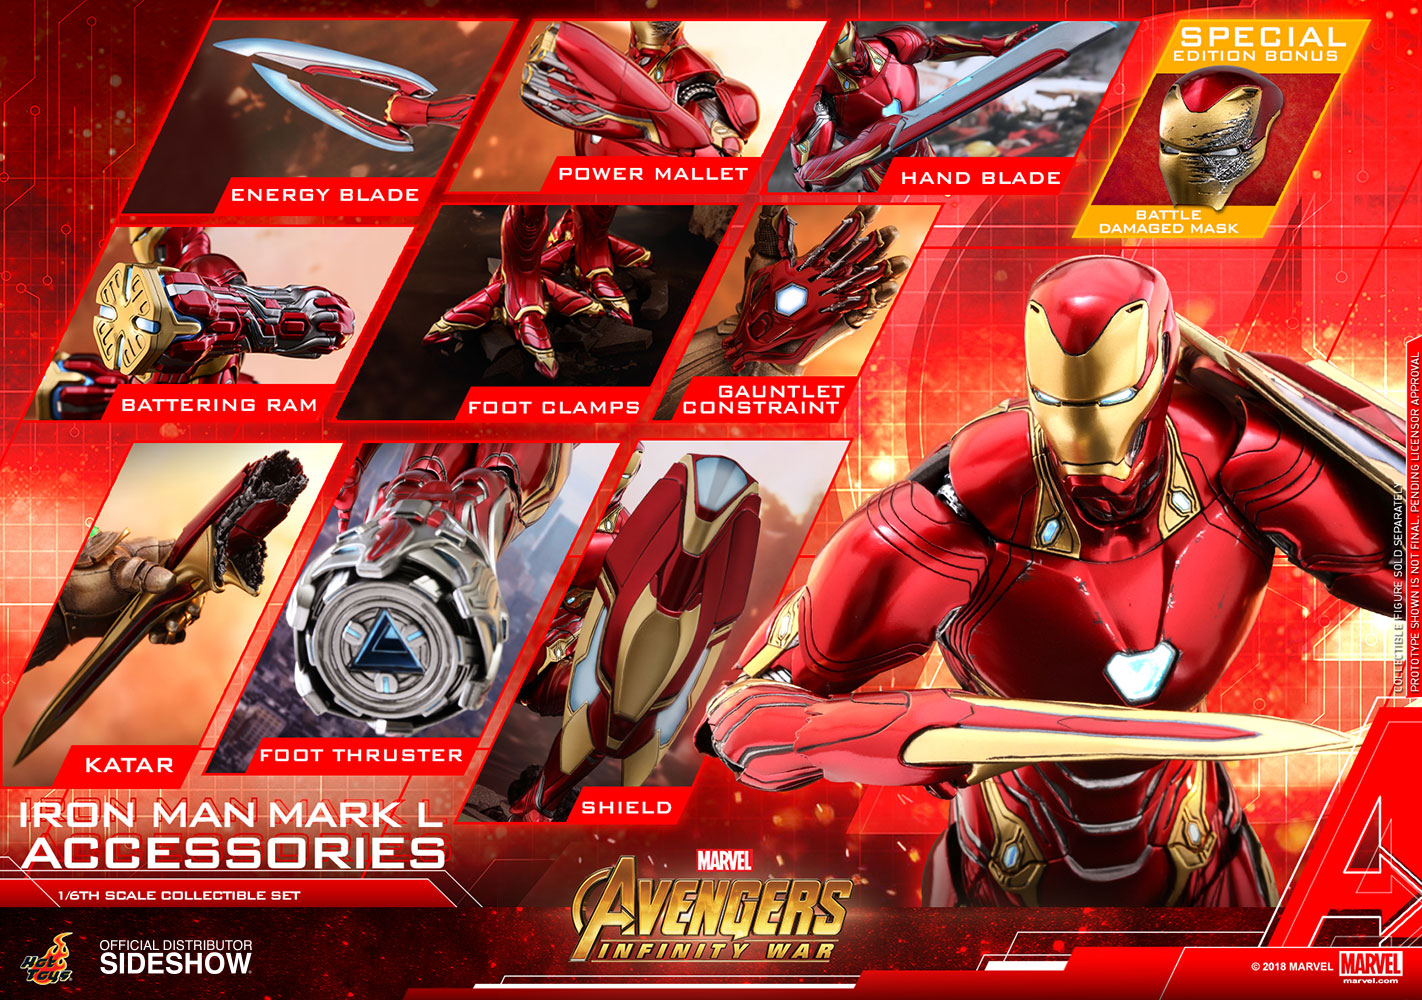 Marvel Iron Man Mark L Accessories Special Edition Set Sideshow